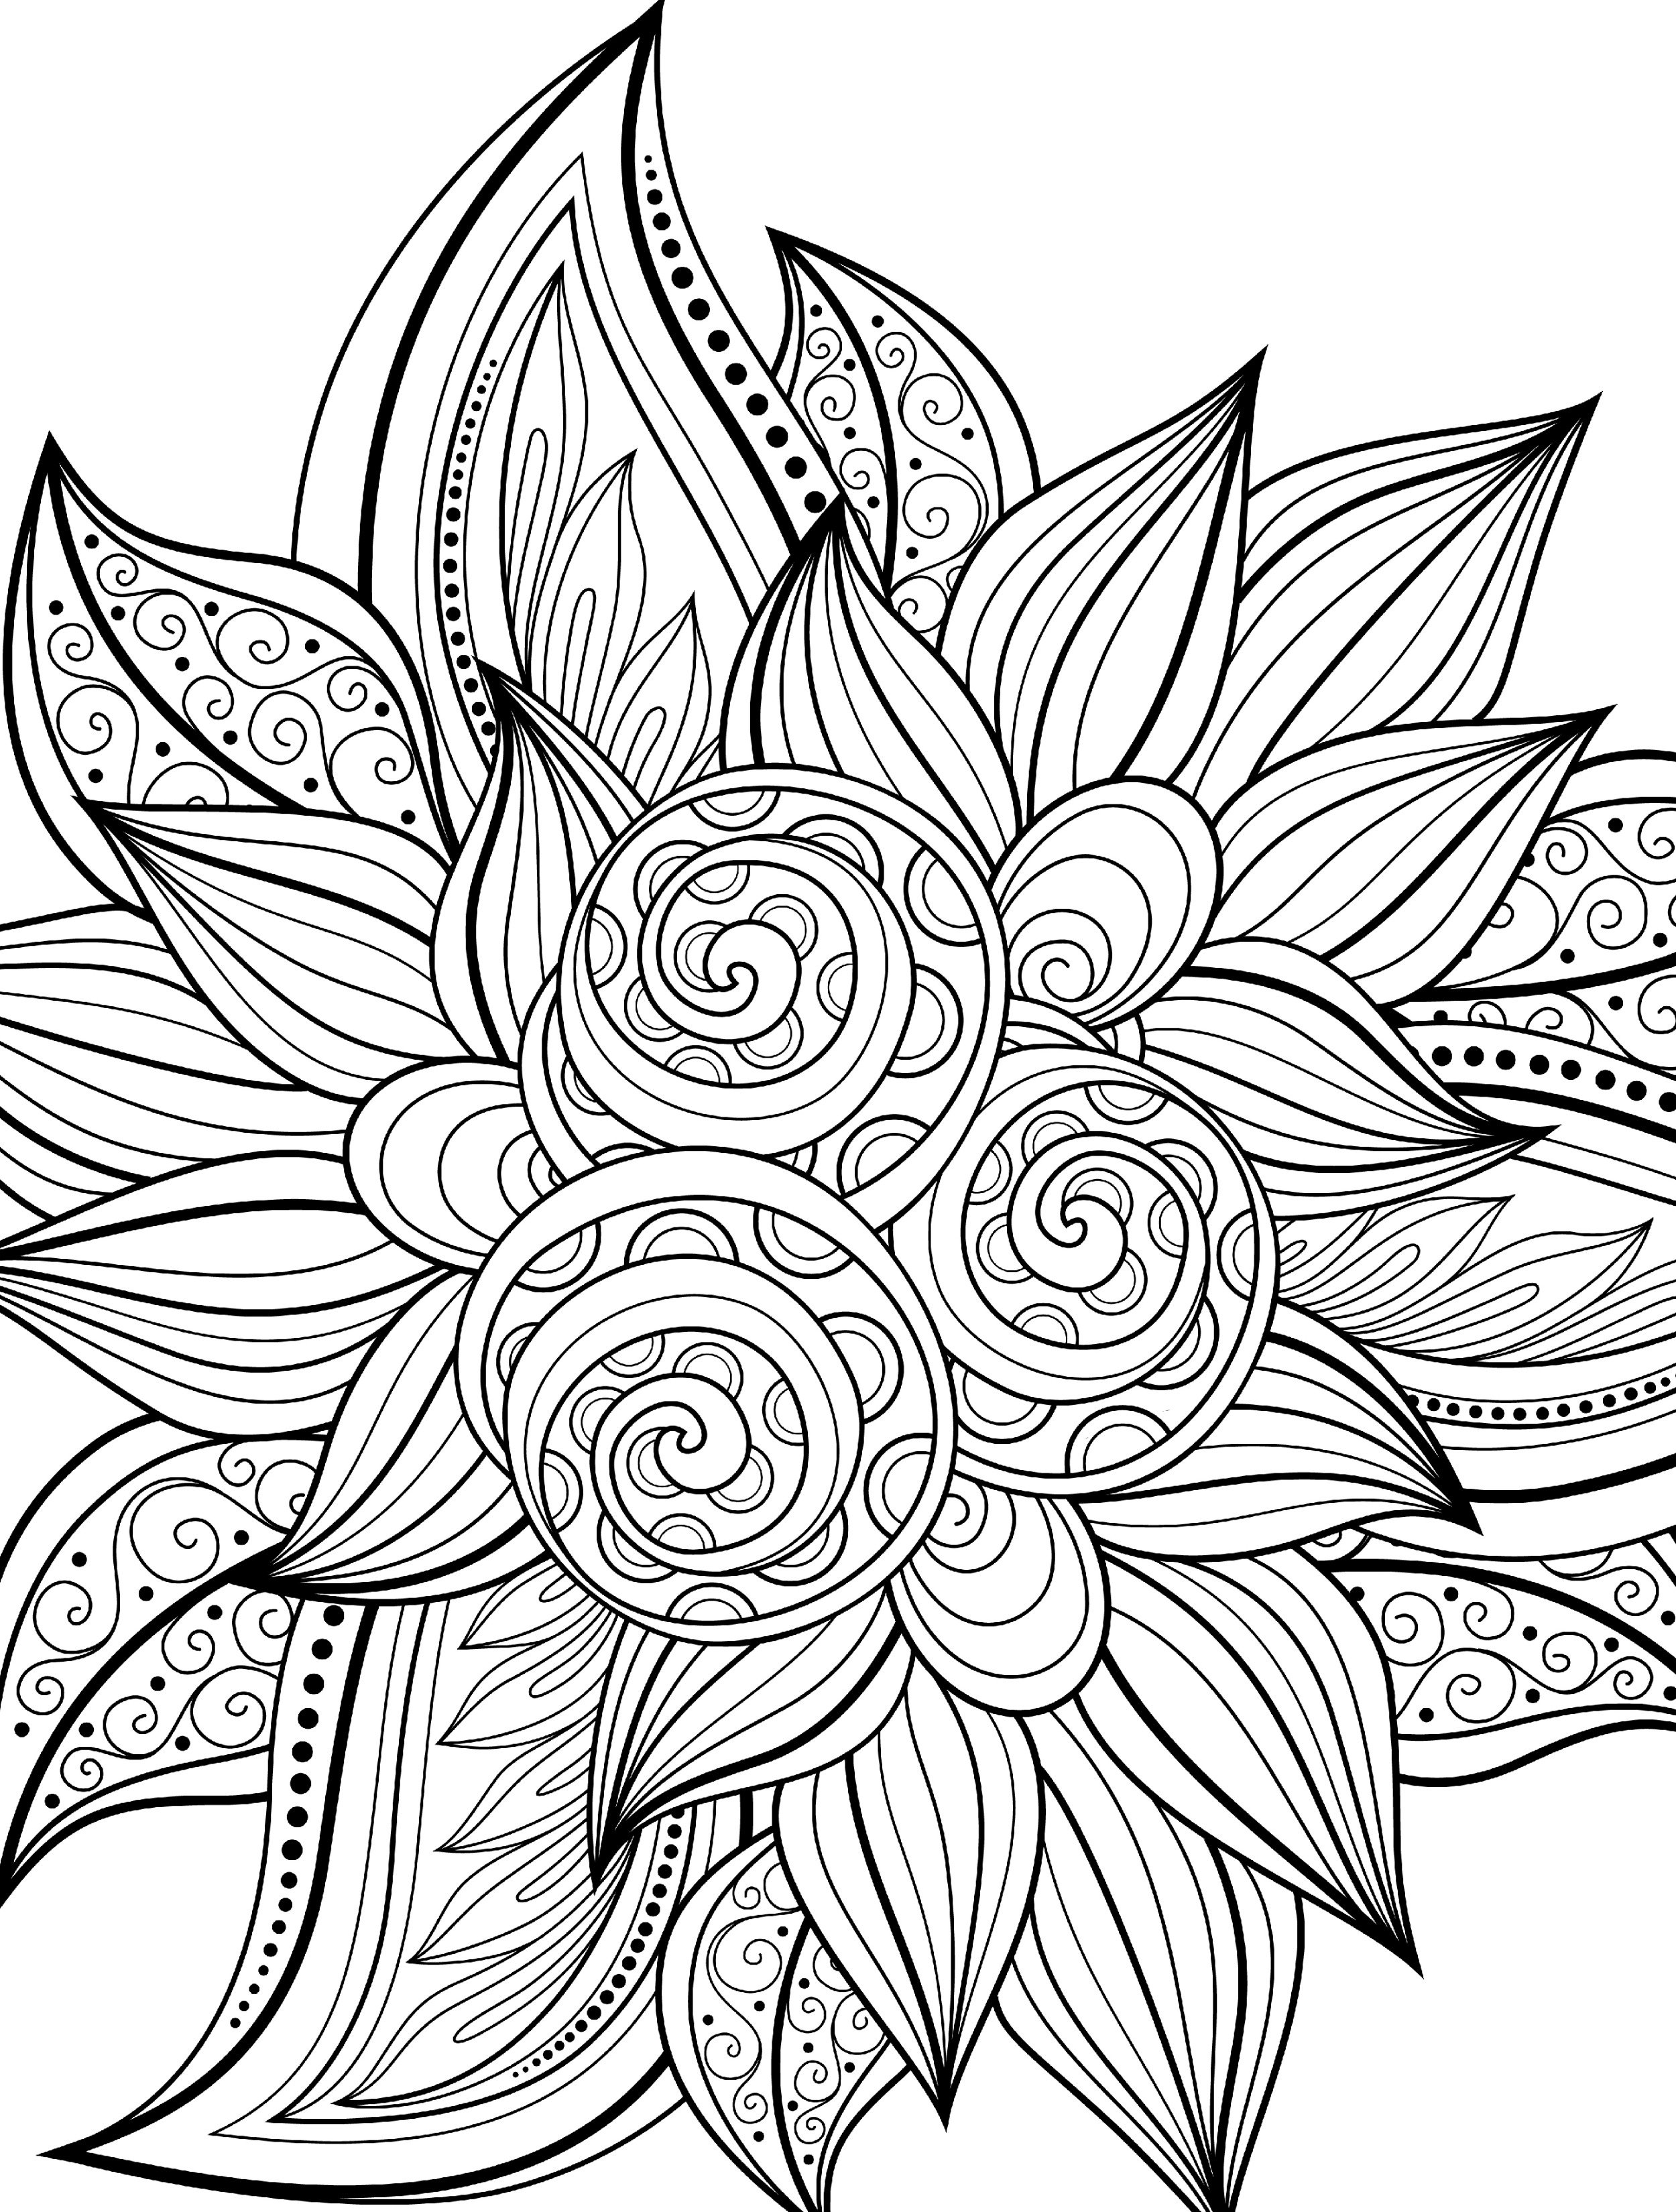 2500x3300 Cool Coloring Pages For Adults